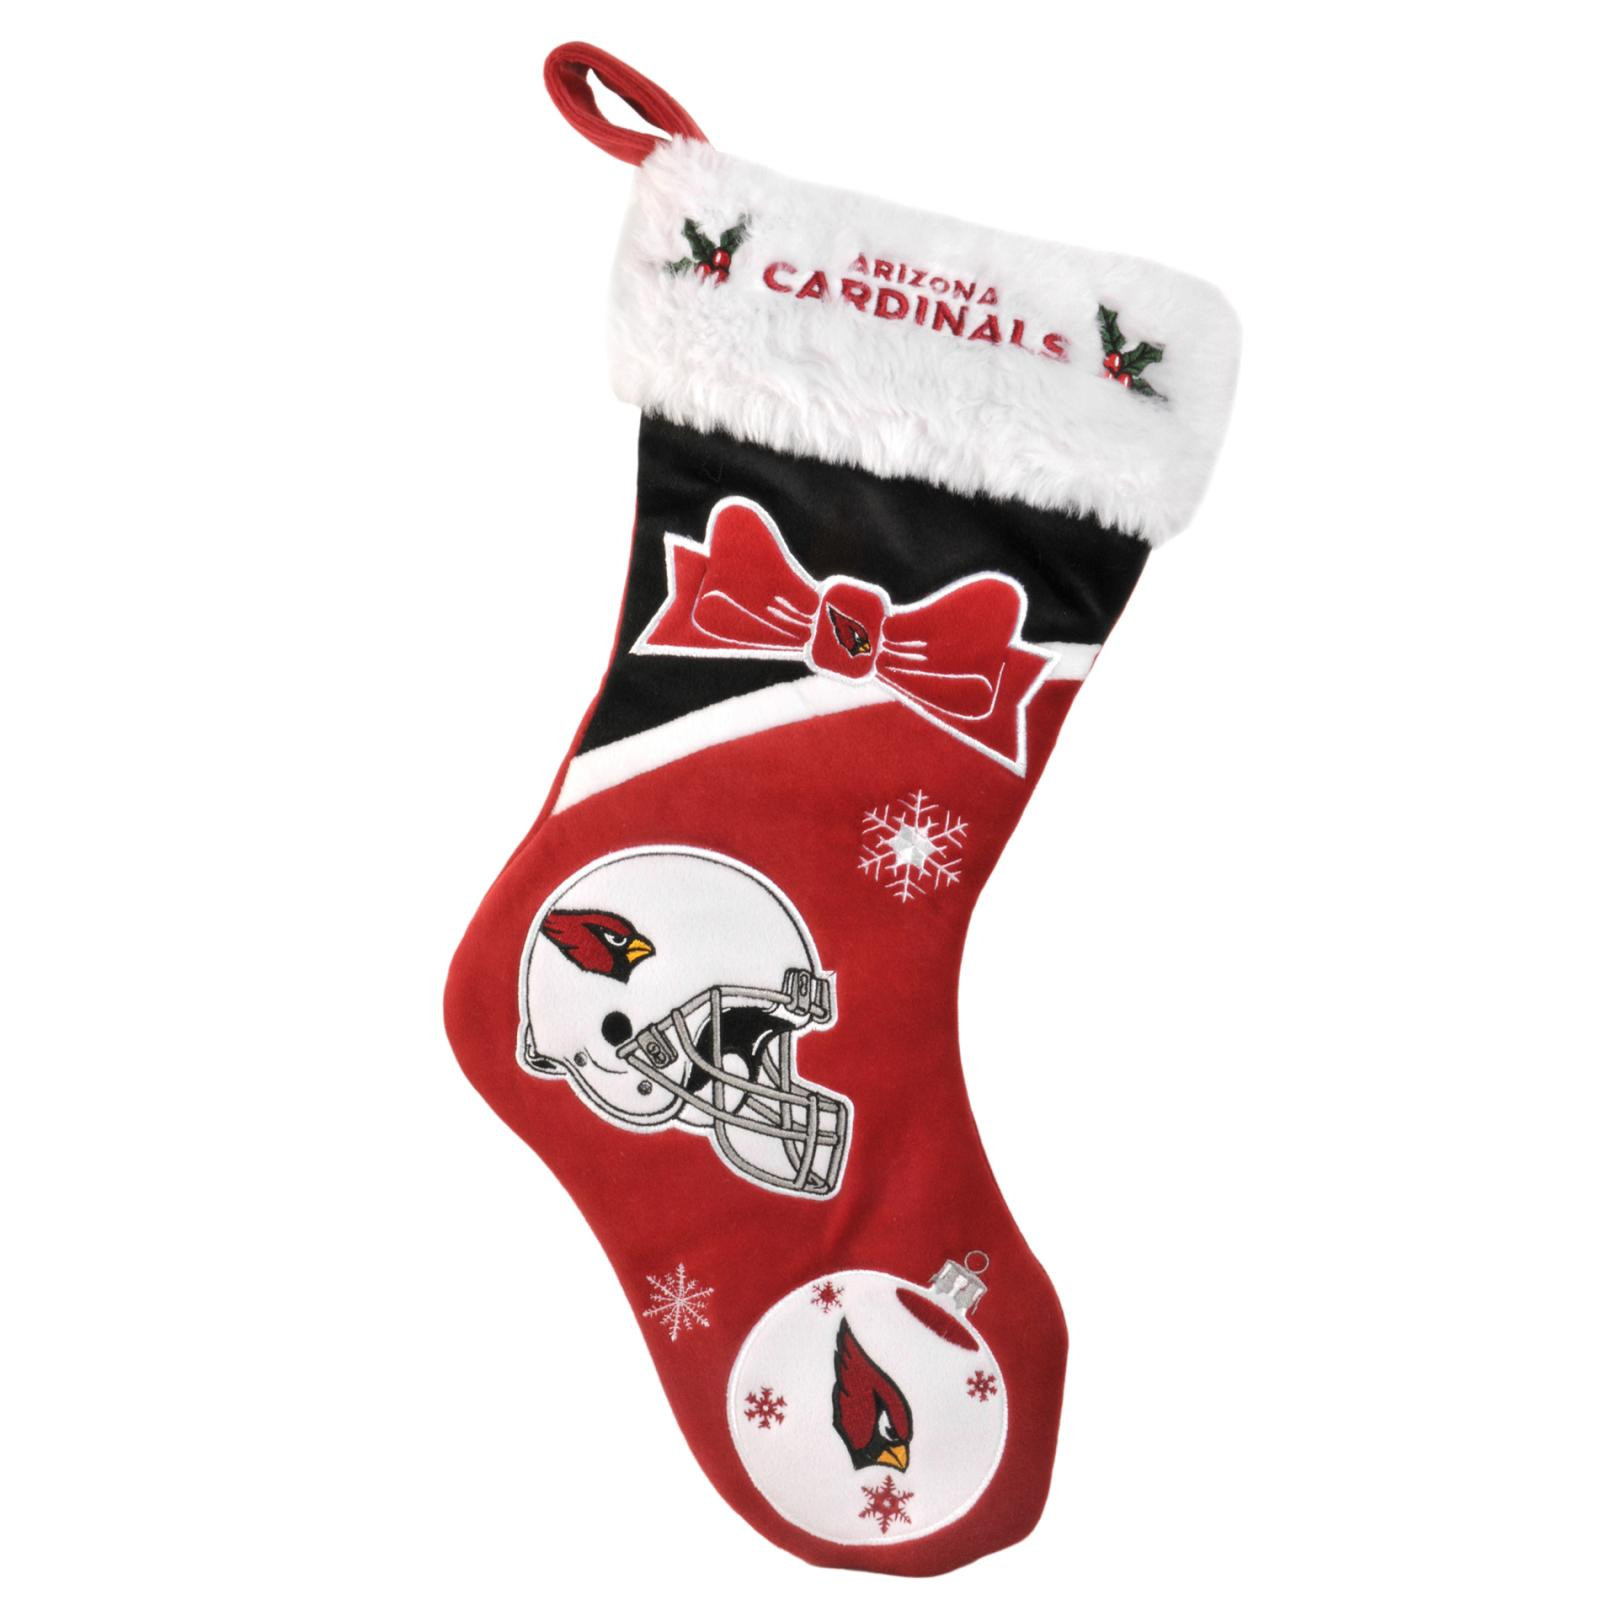 Arizona Cardinals Polyester Christmas Stocking